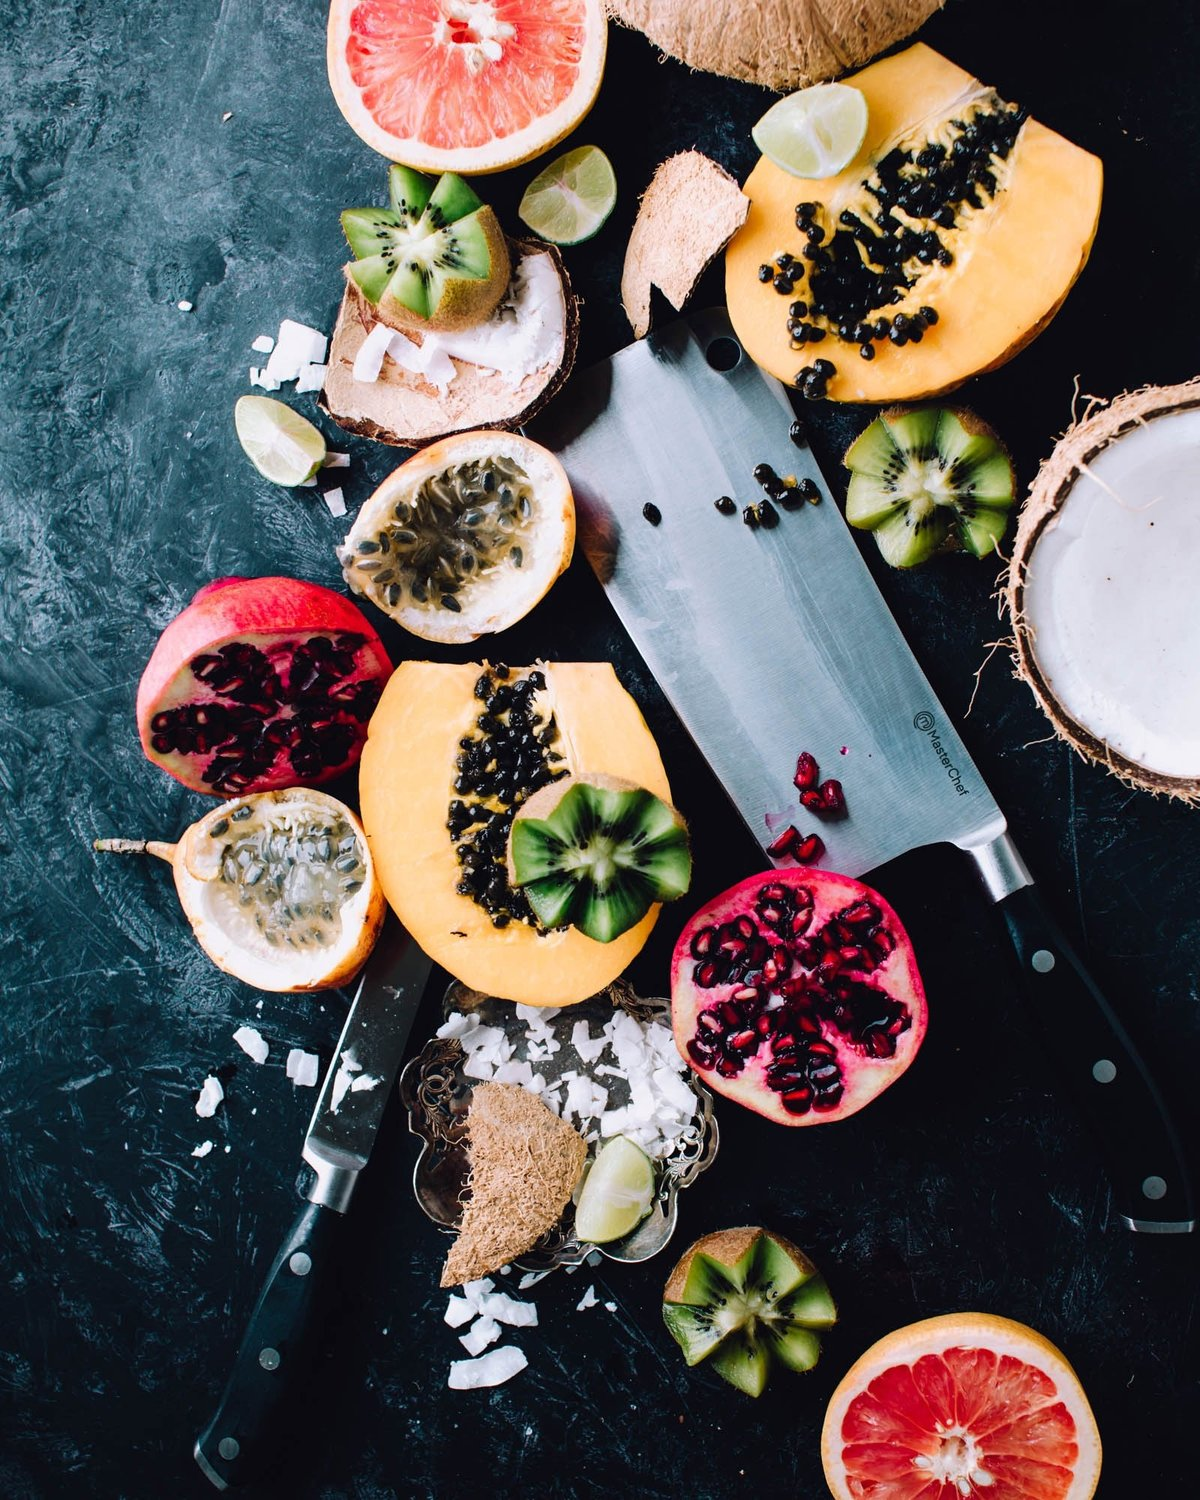 food-photographer-jennifer-pallian-650631-unsplash